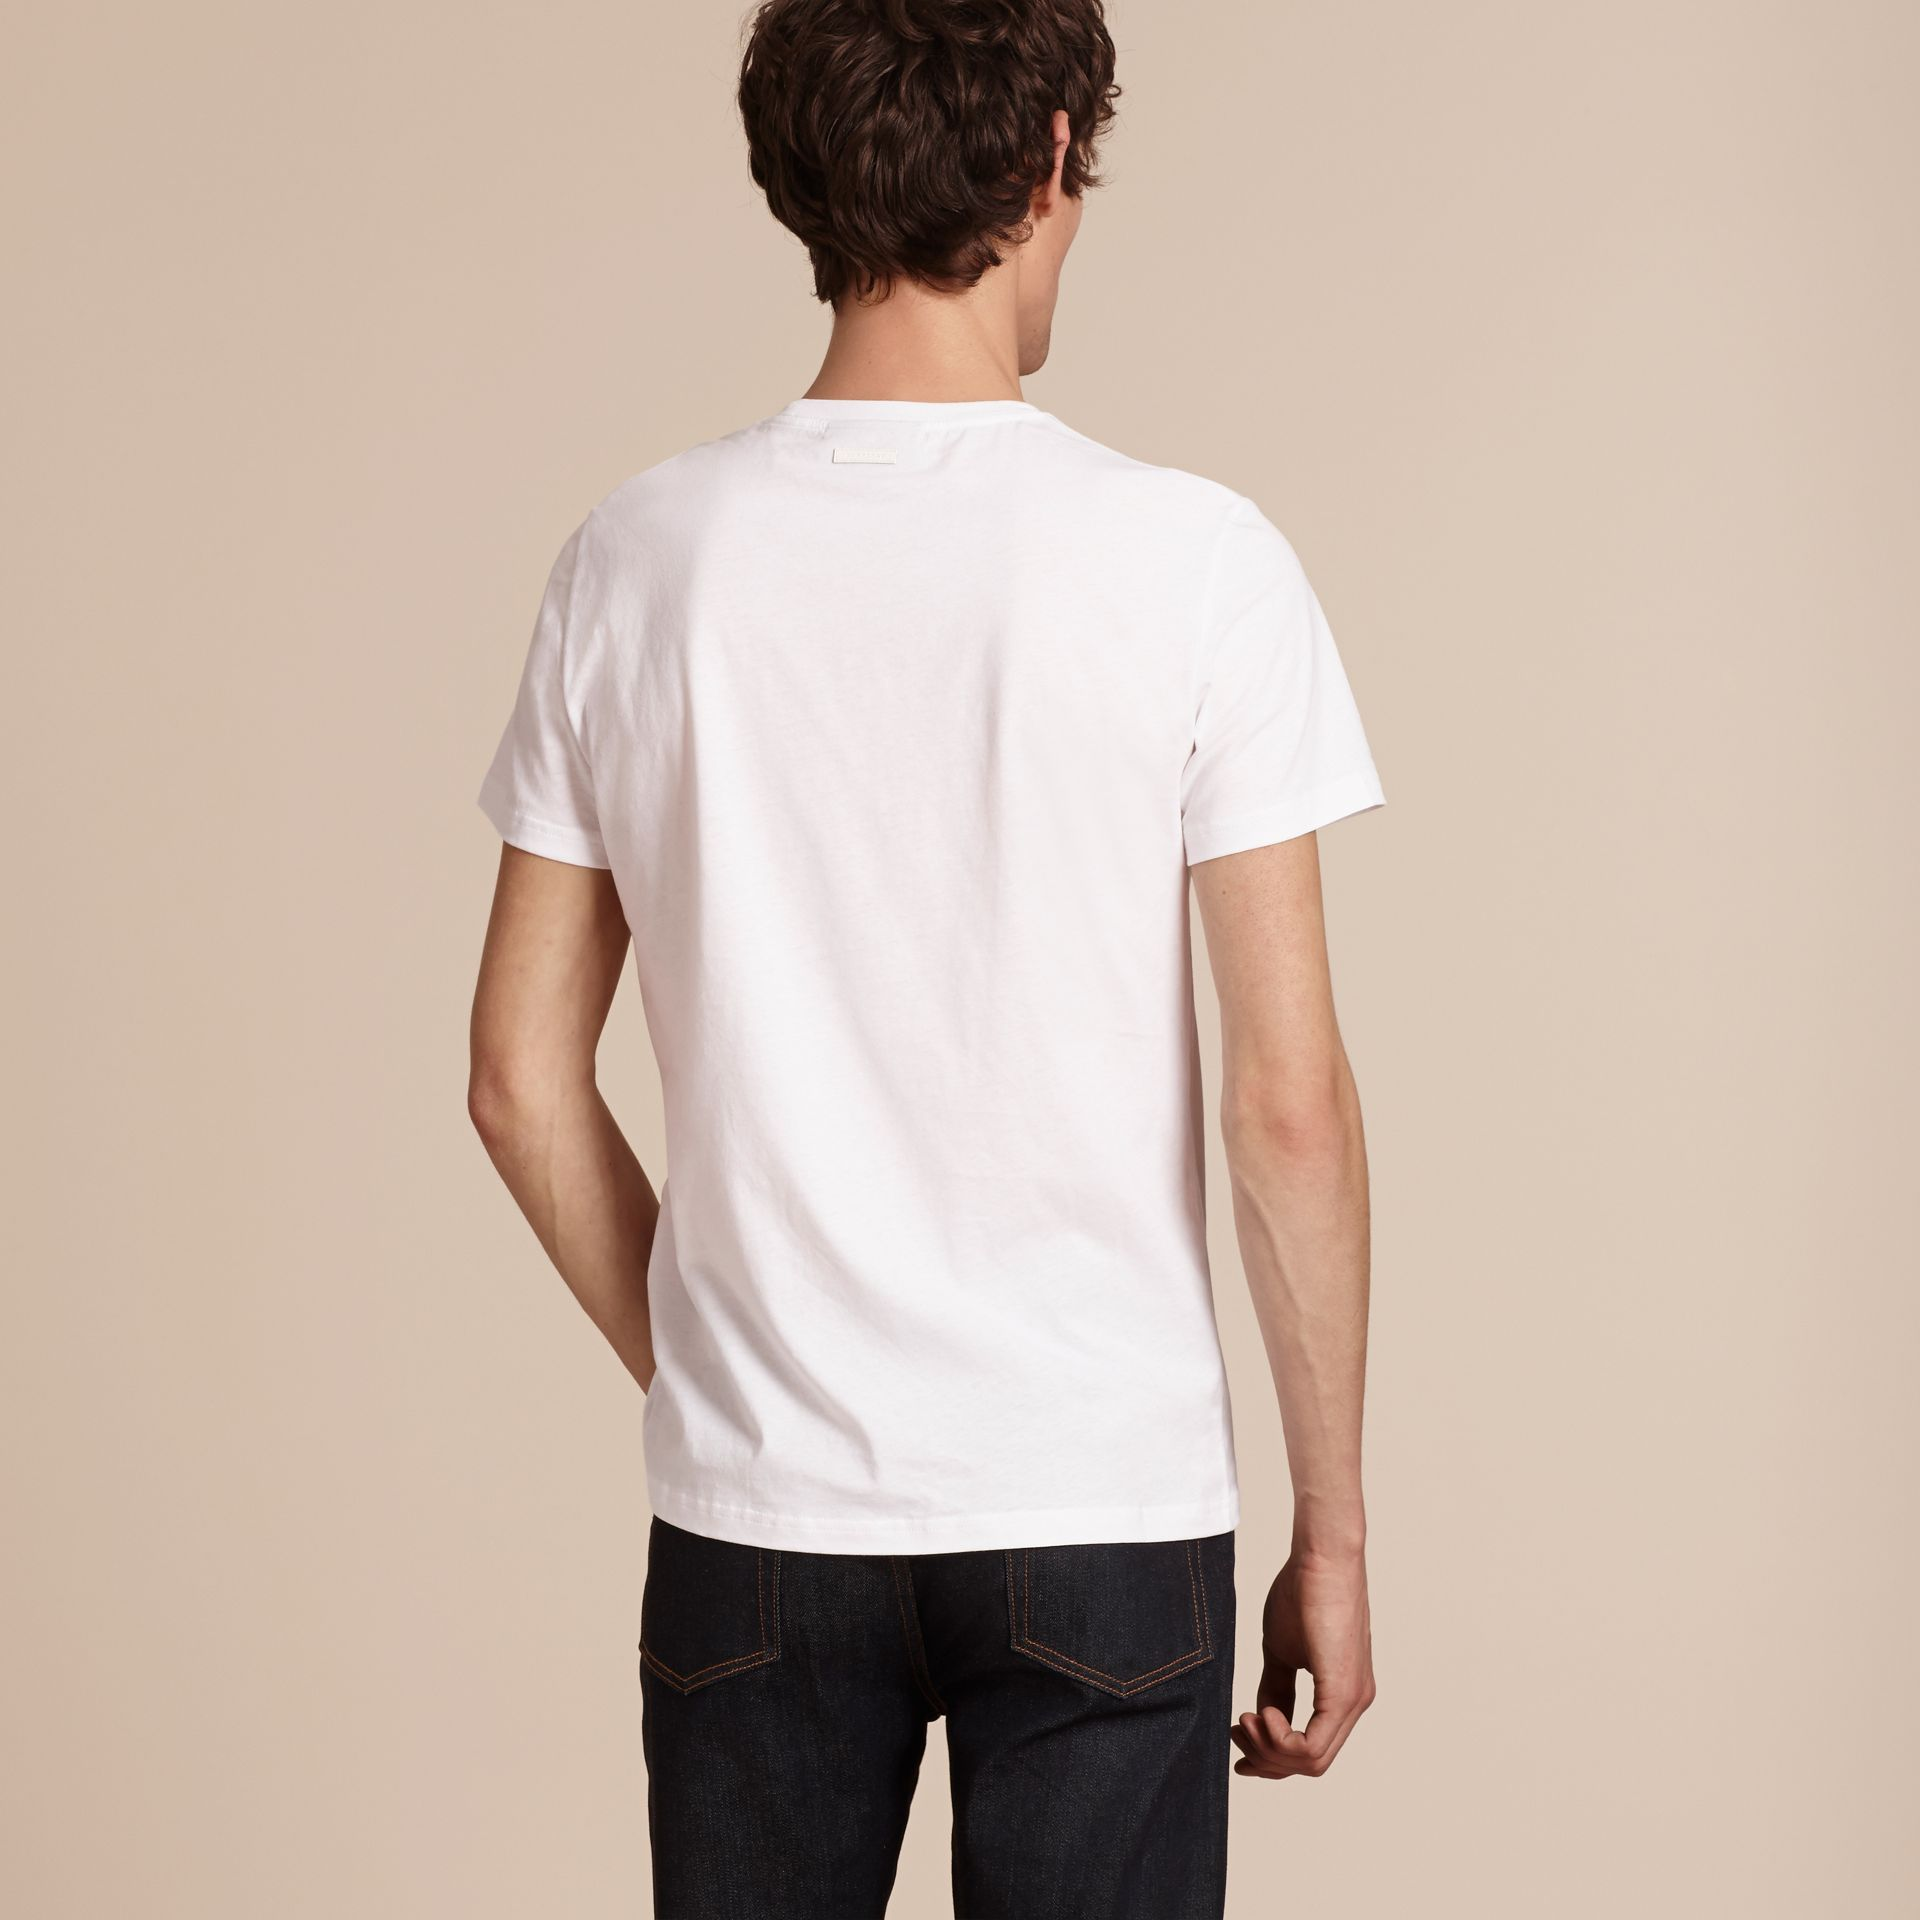 White Passion Motif Cotton T-shirt White - gallery image 3